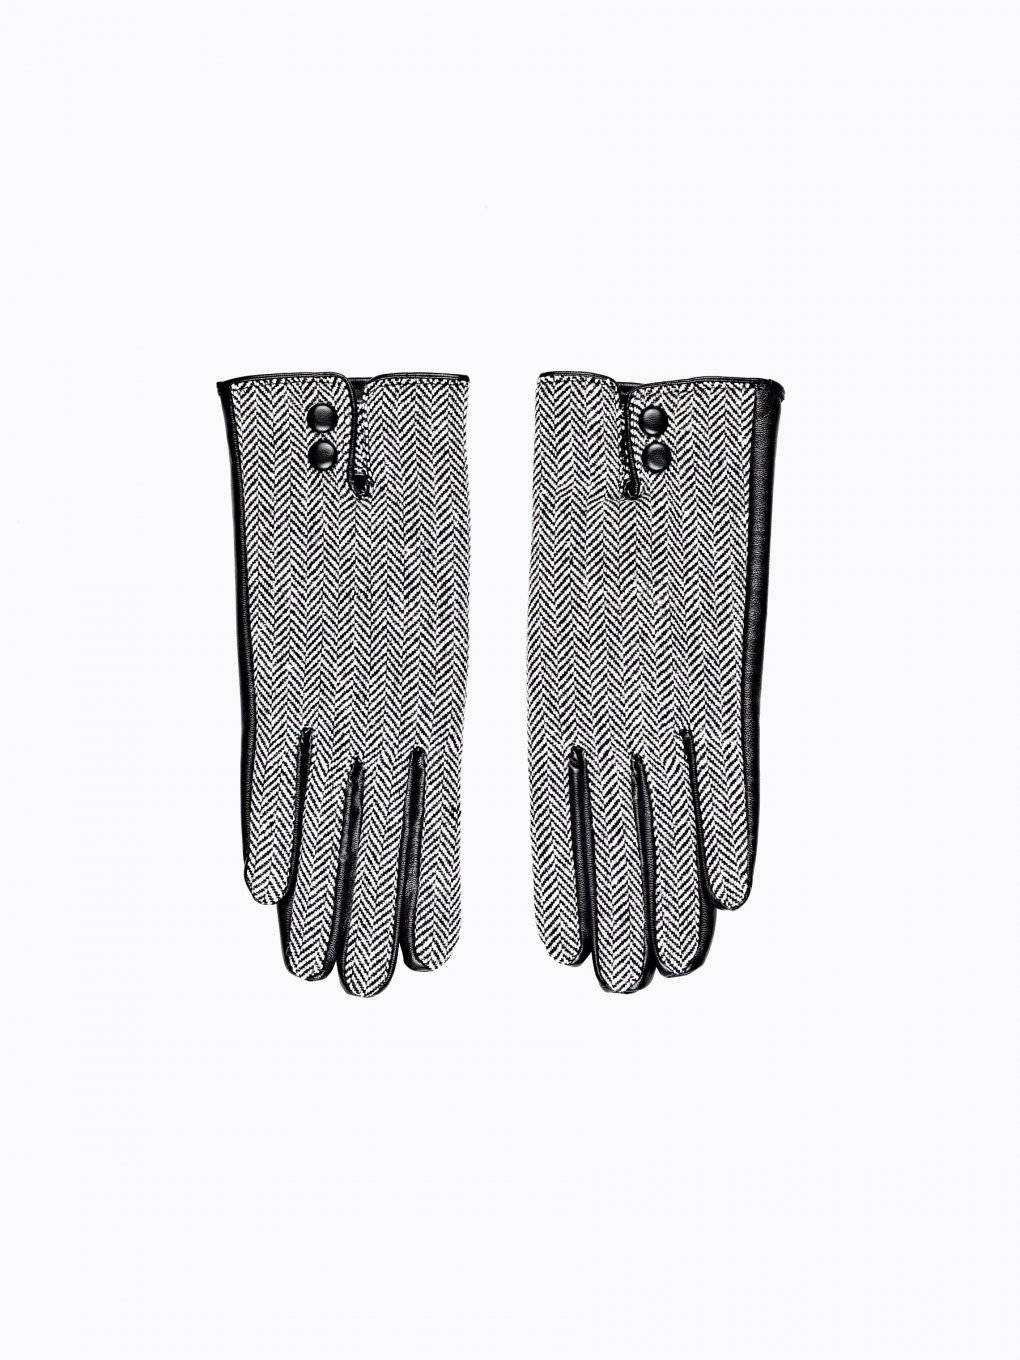 Combined gloves